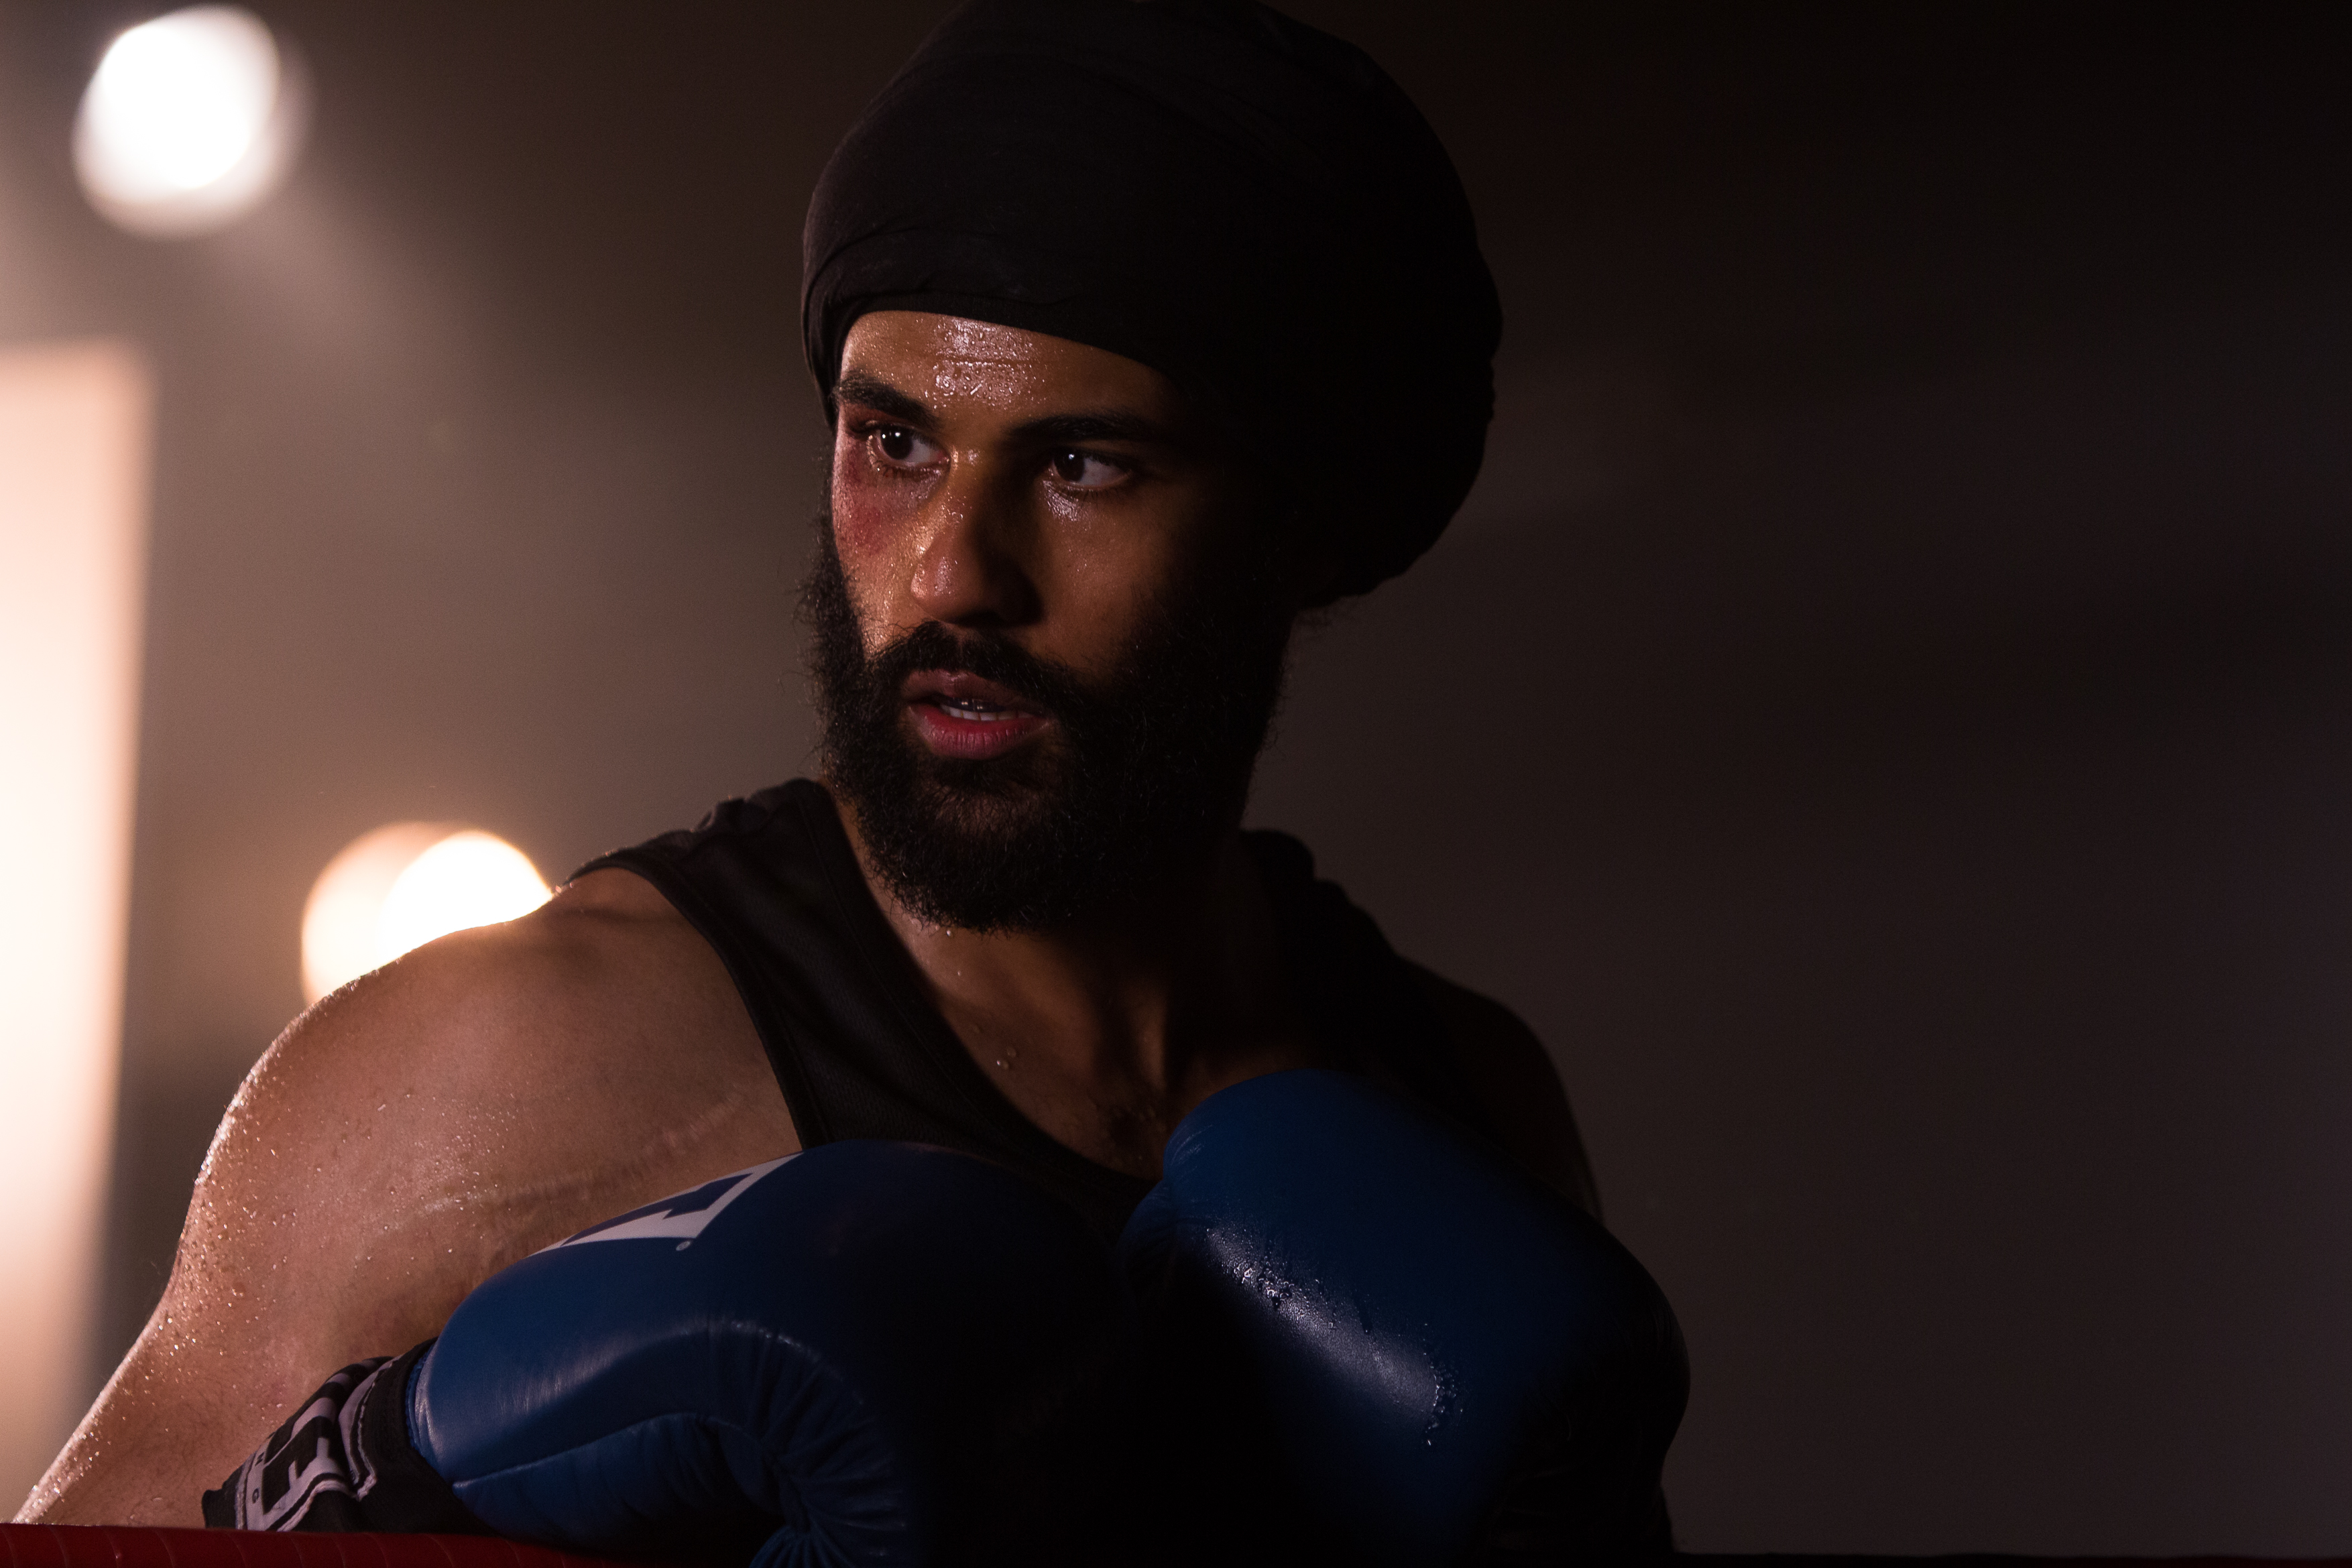 Prem Singh as Pardeep Nagra in 'Tiger'